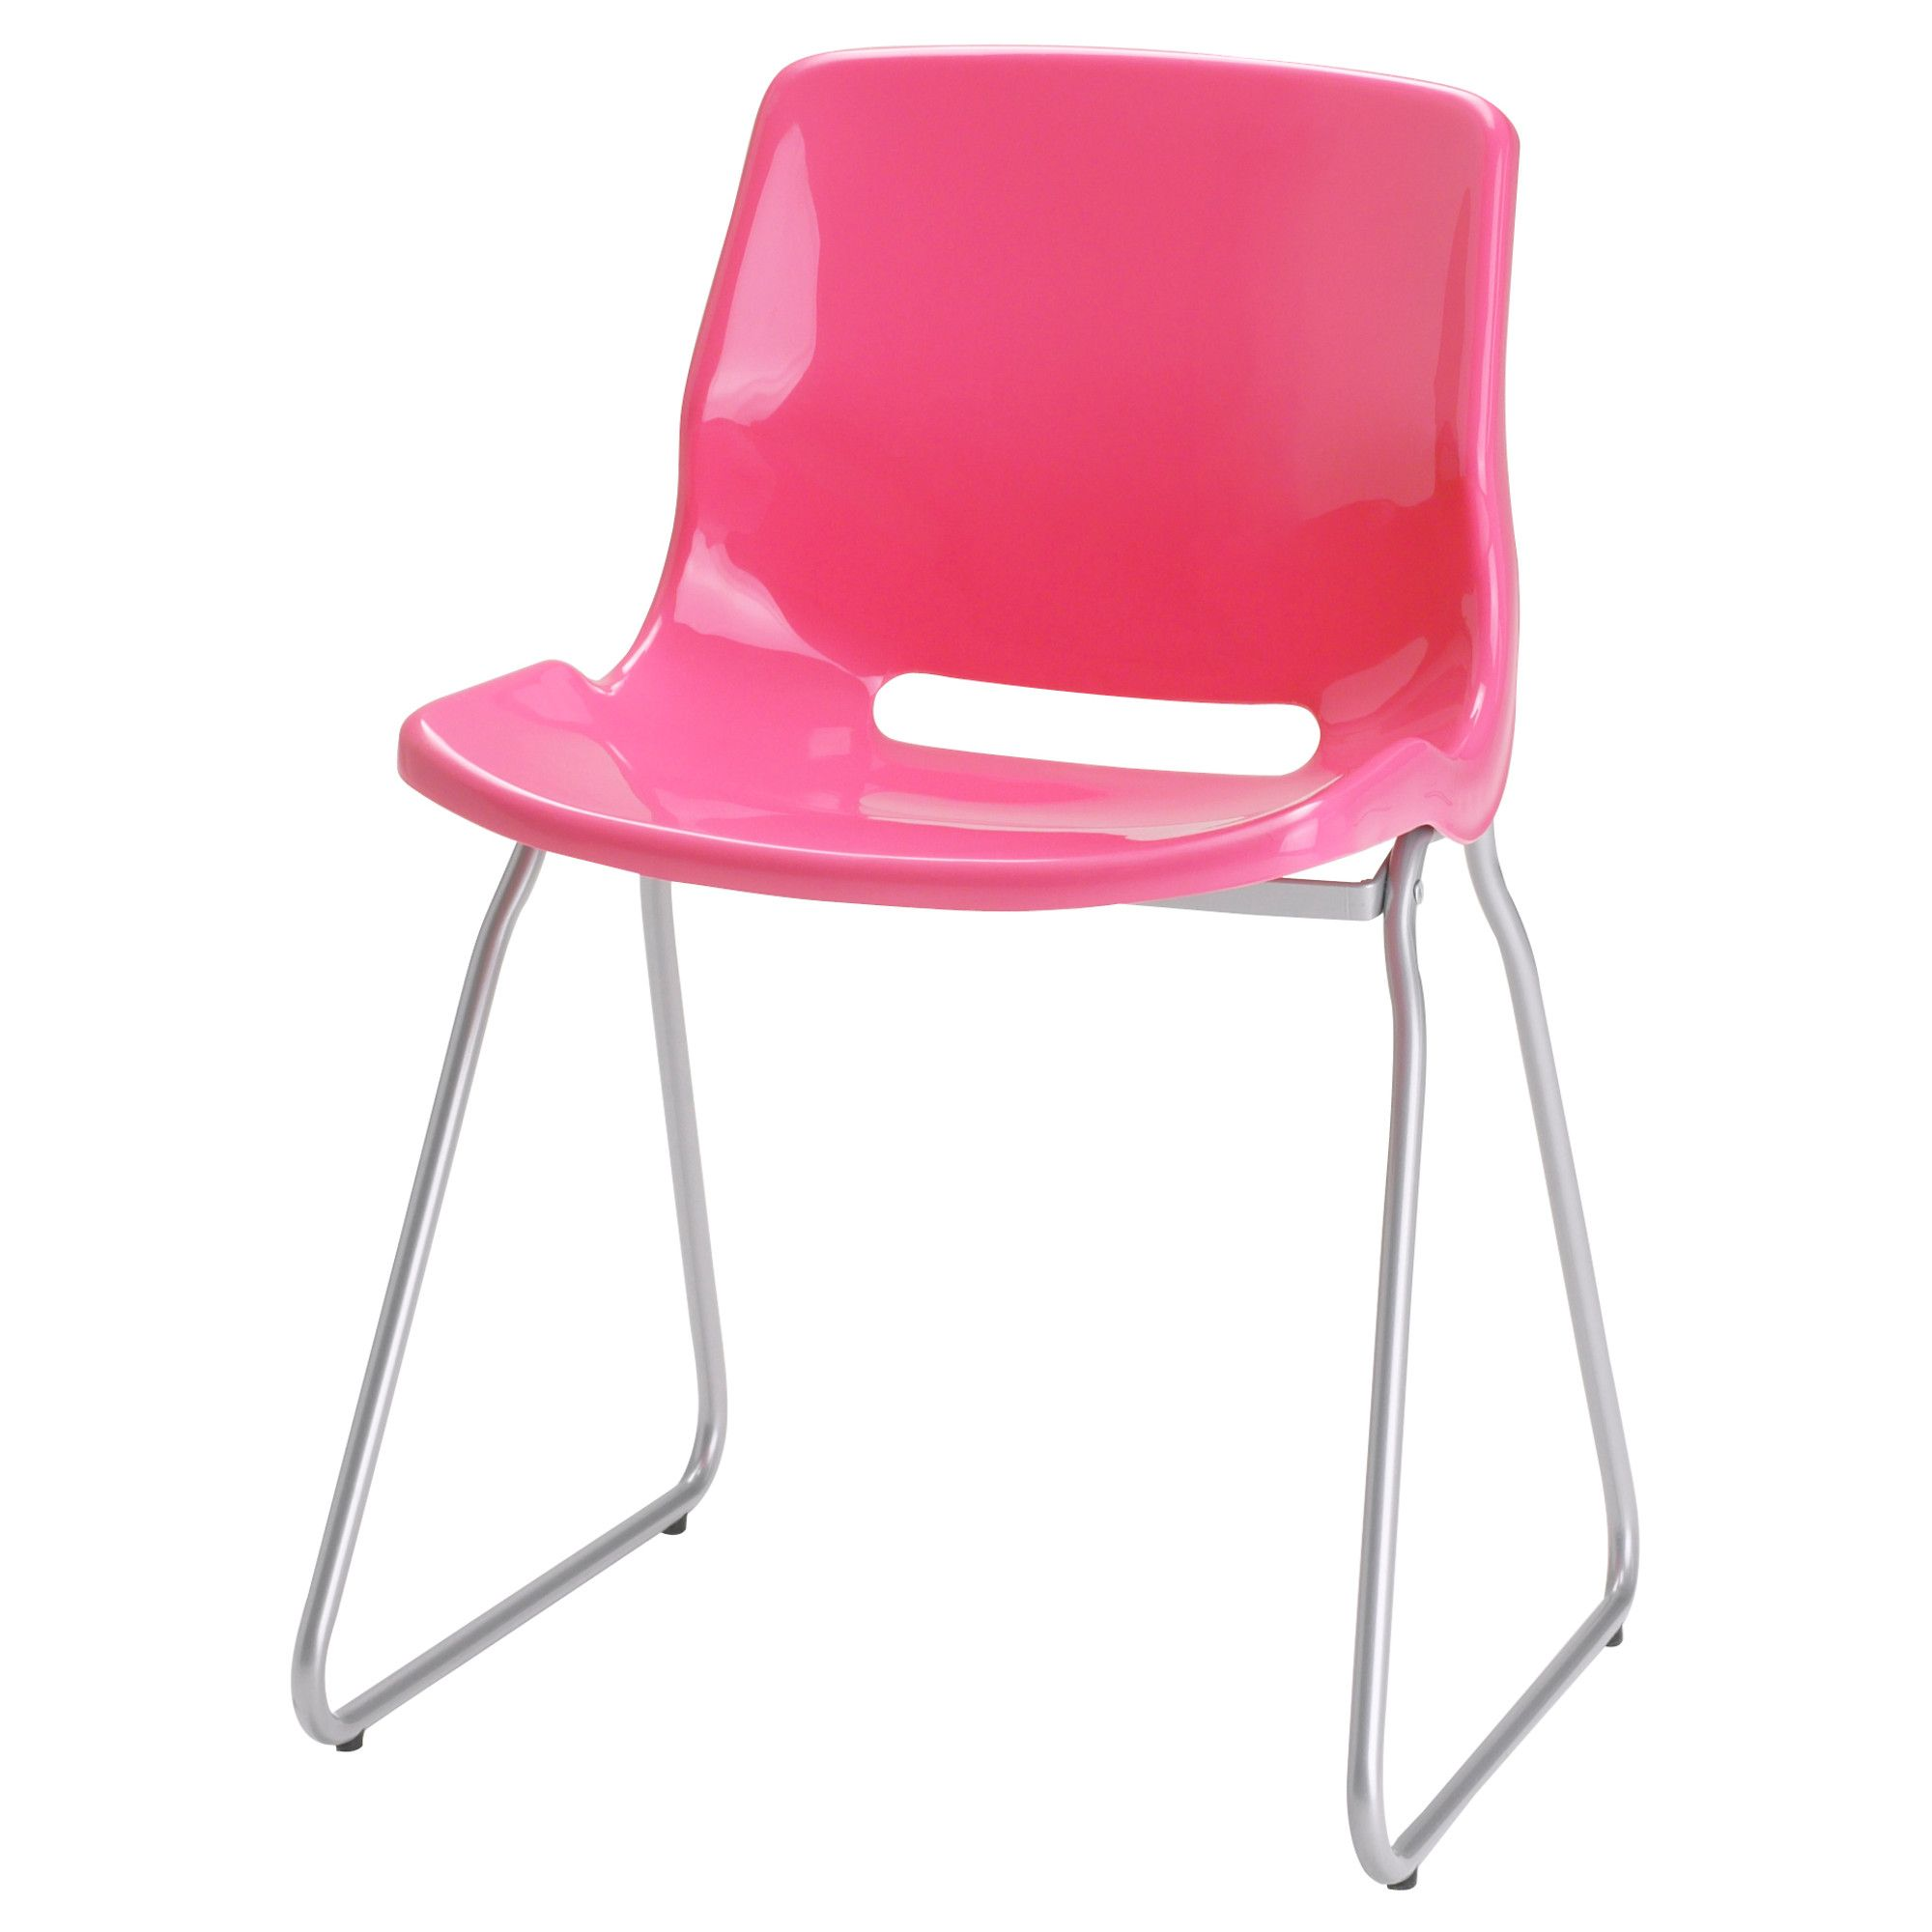 SNILLE Visitor chair pink IKEA new office